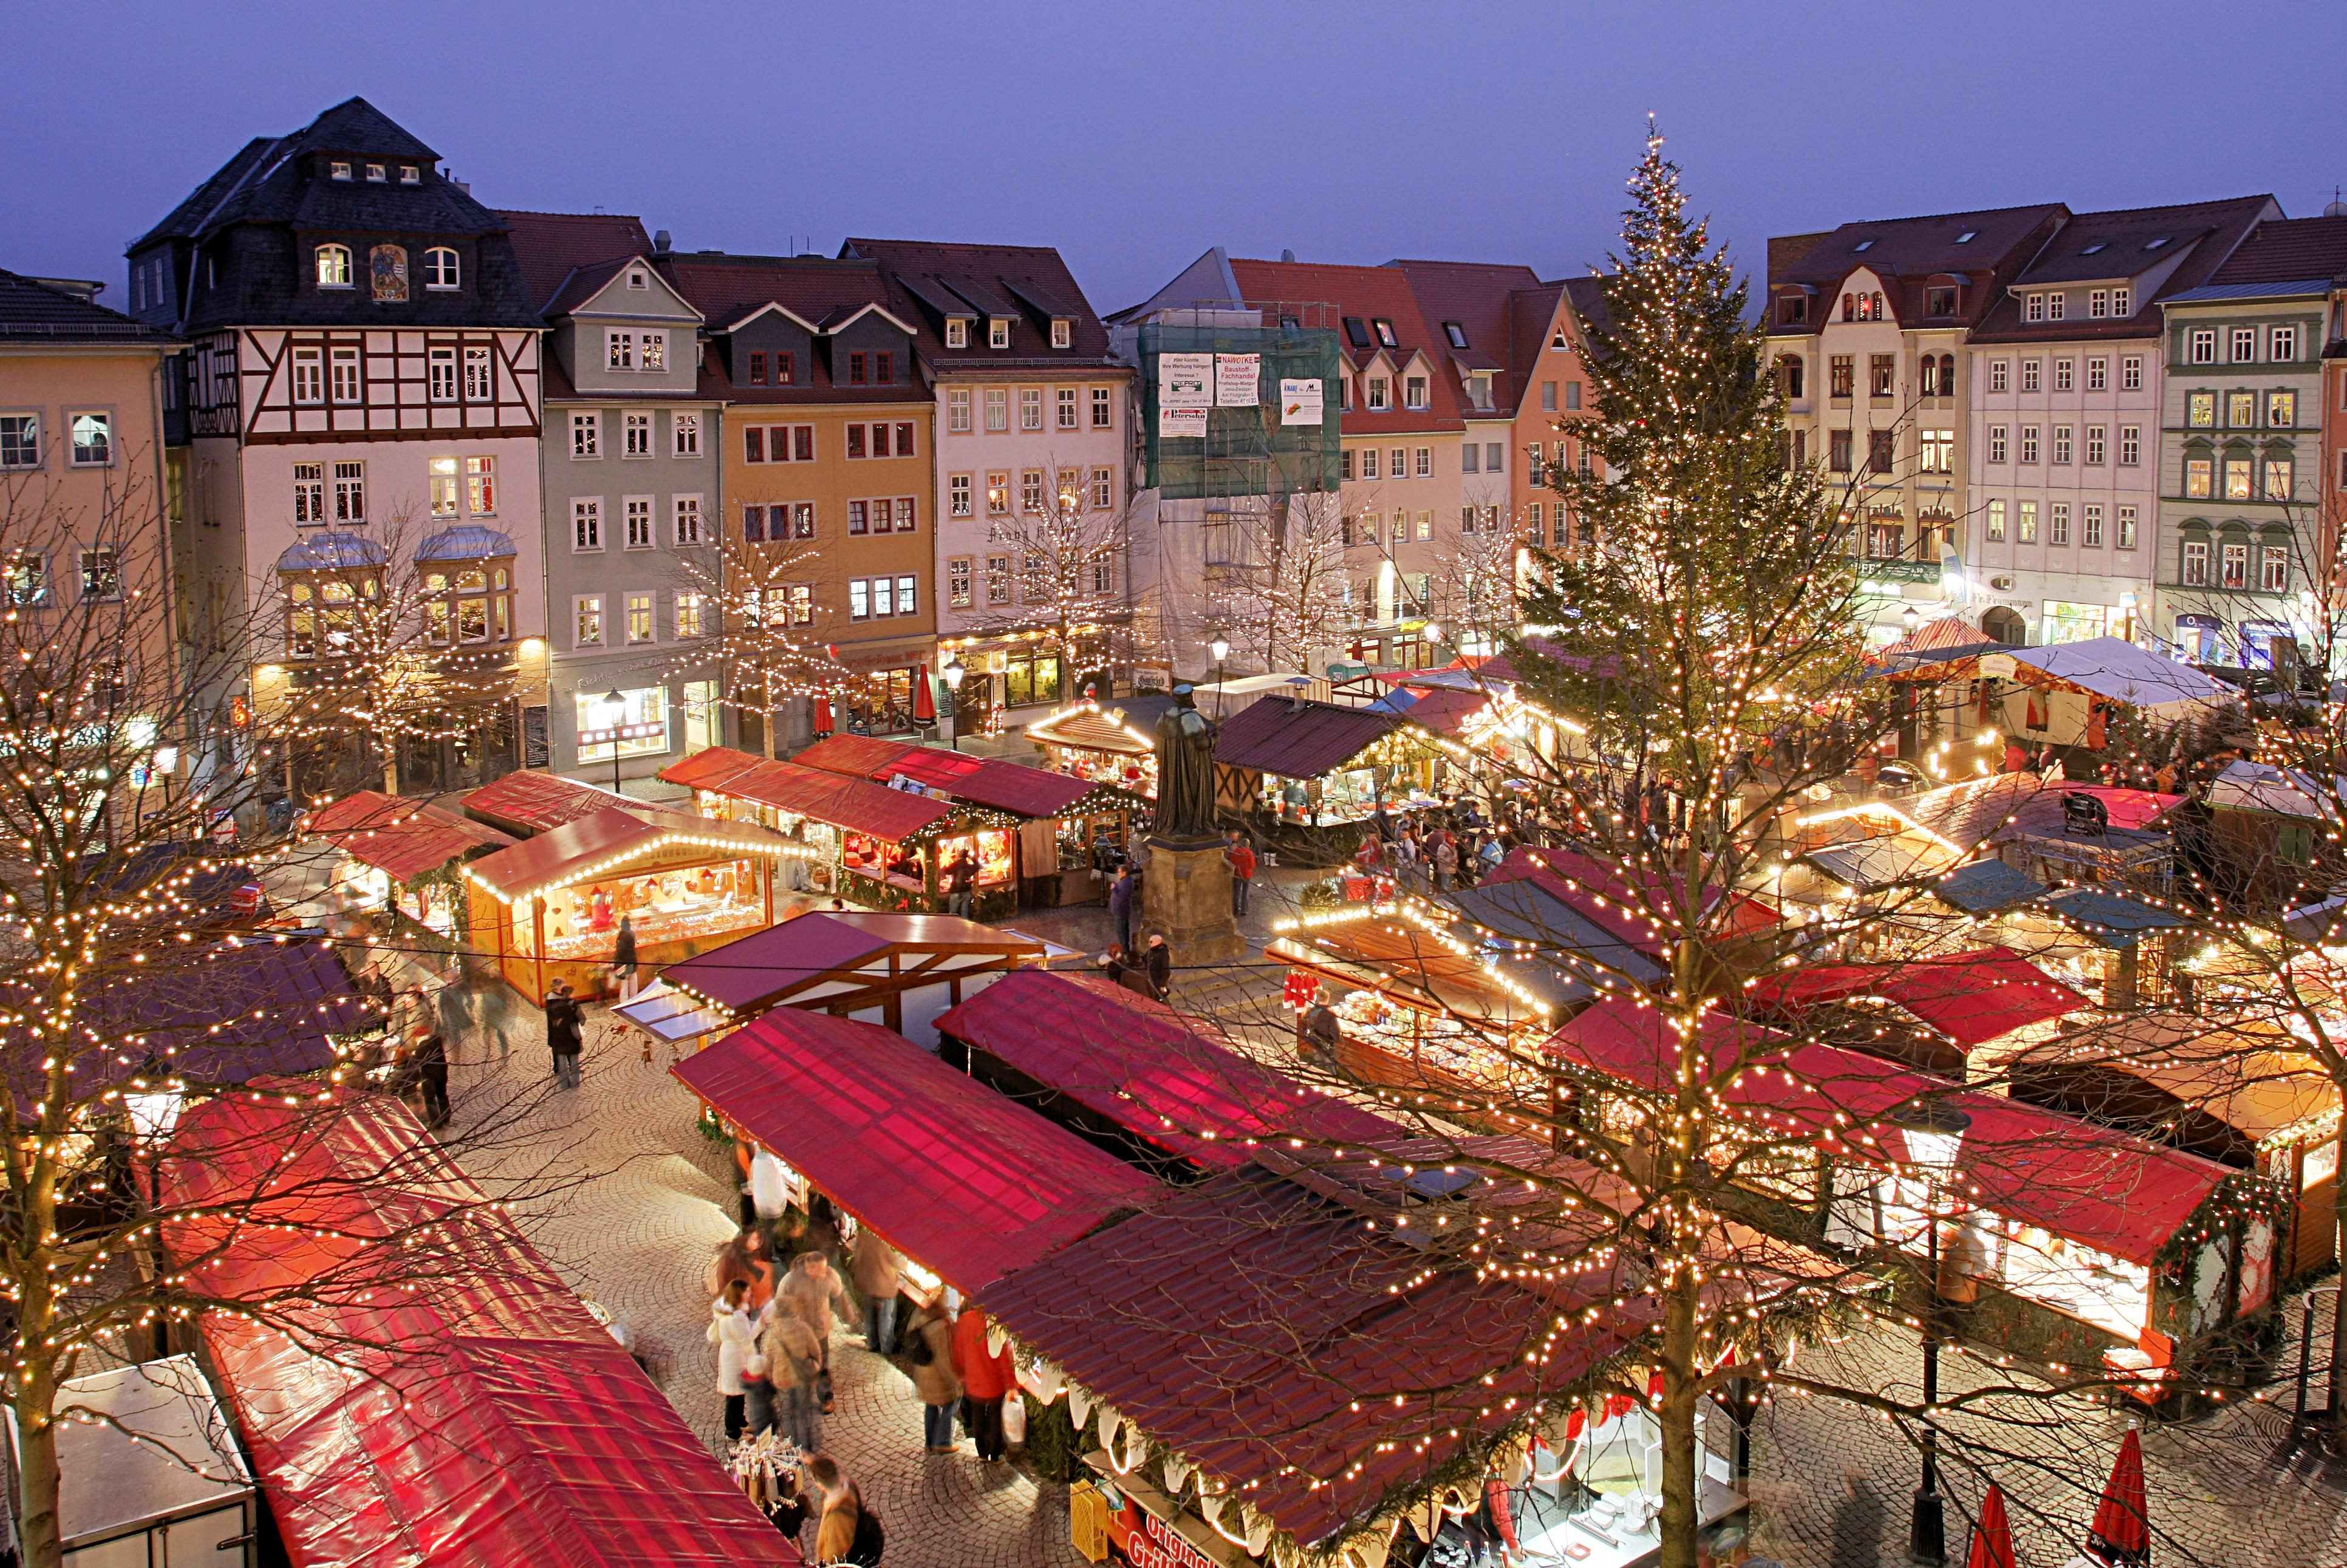 Christmas Market in Jena, Germany